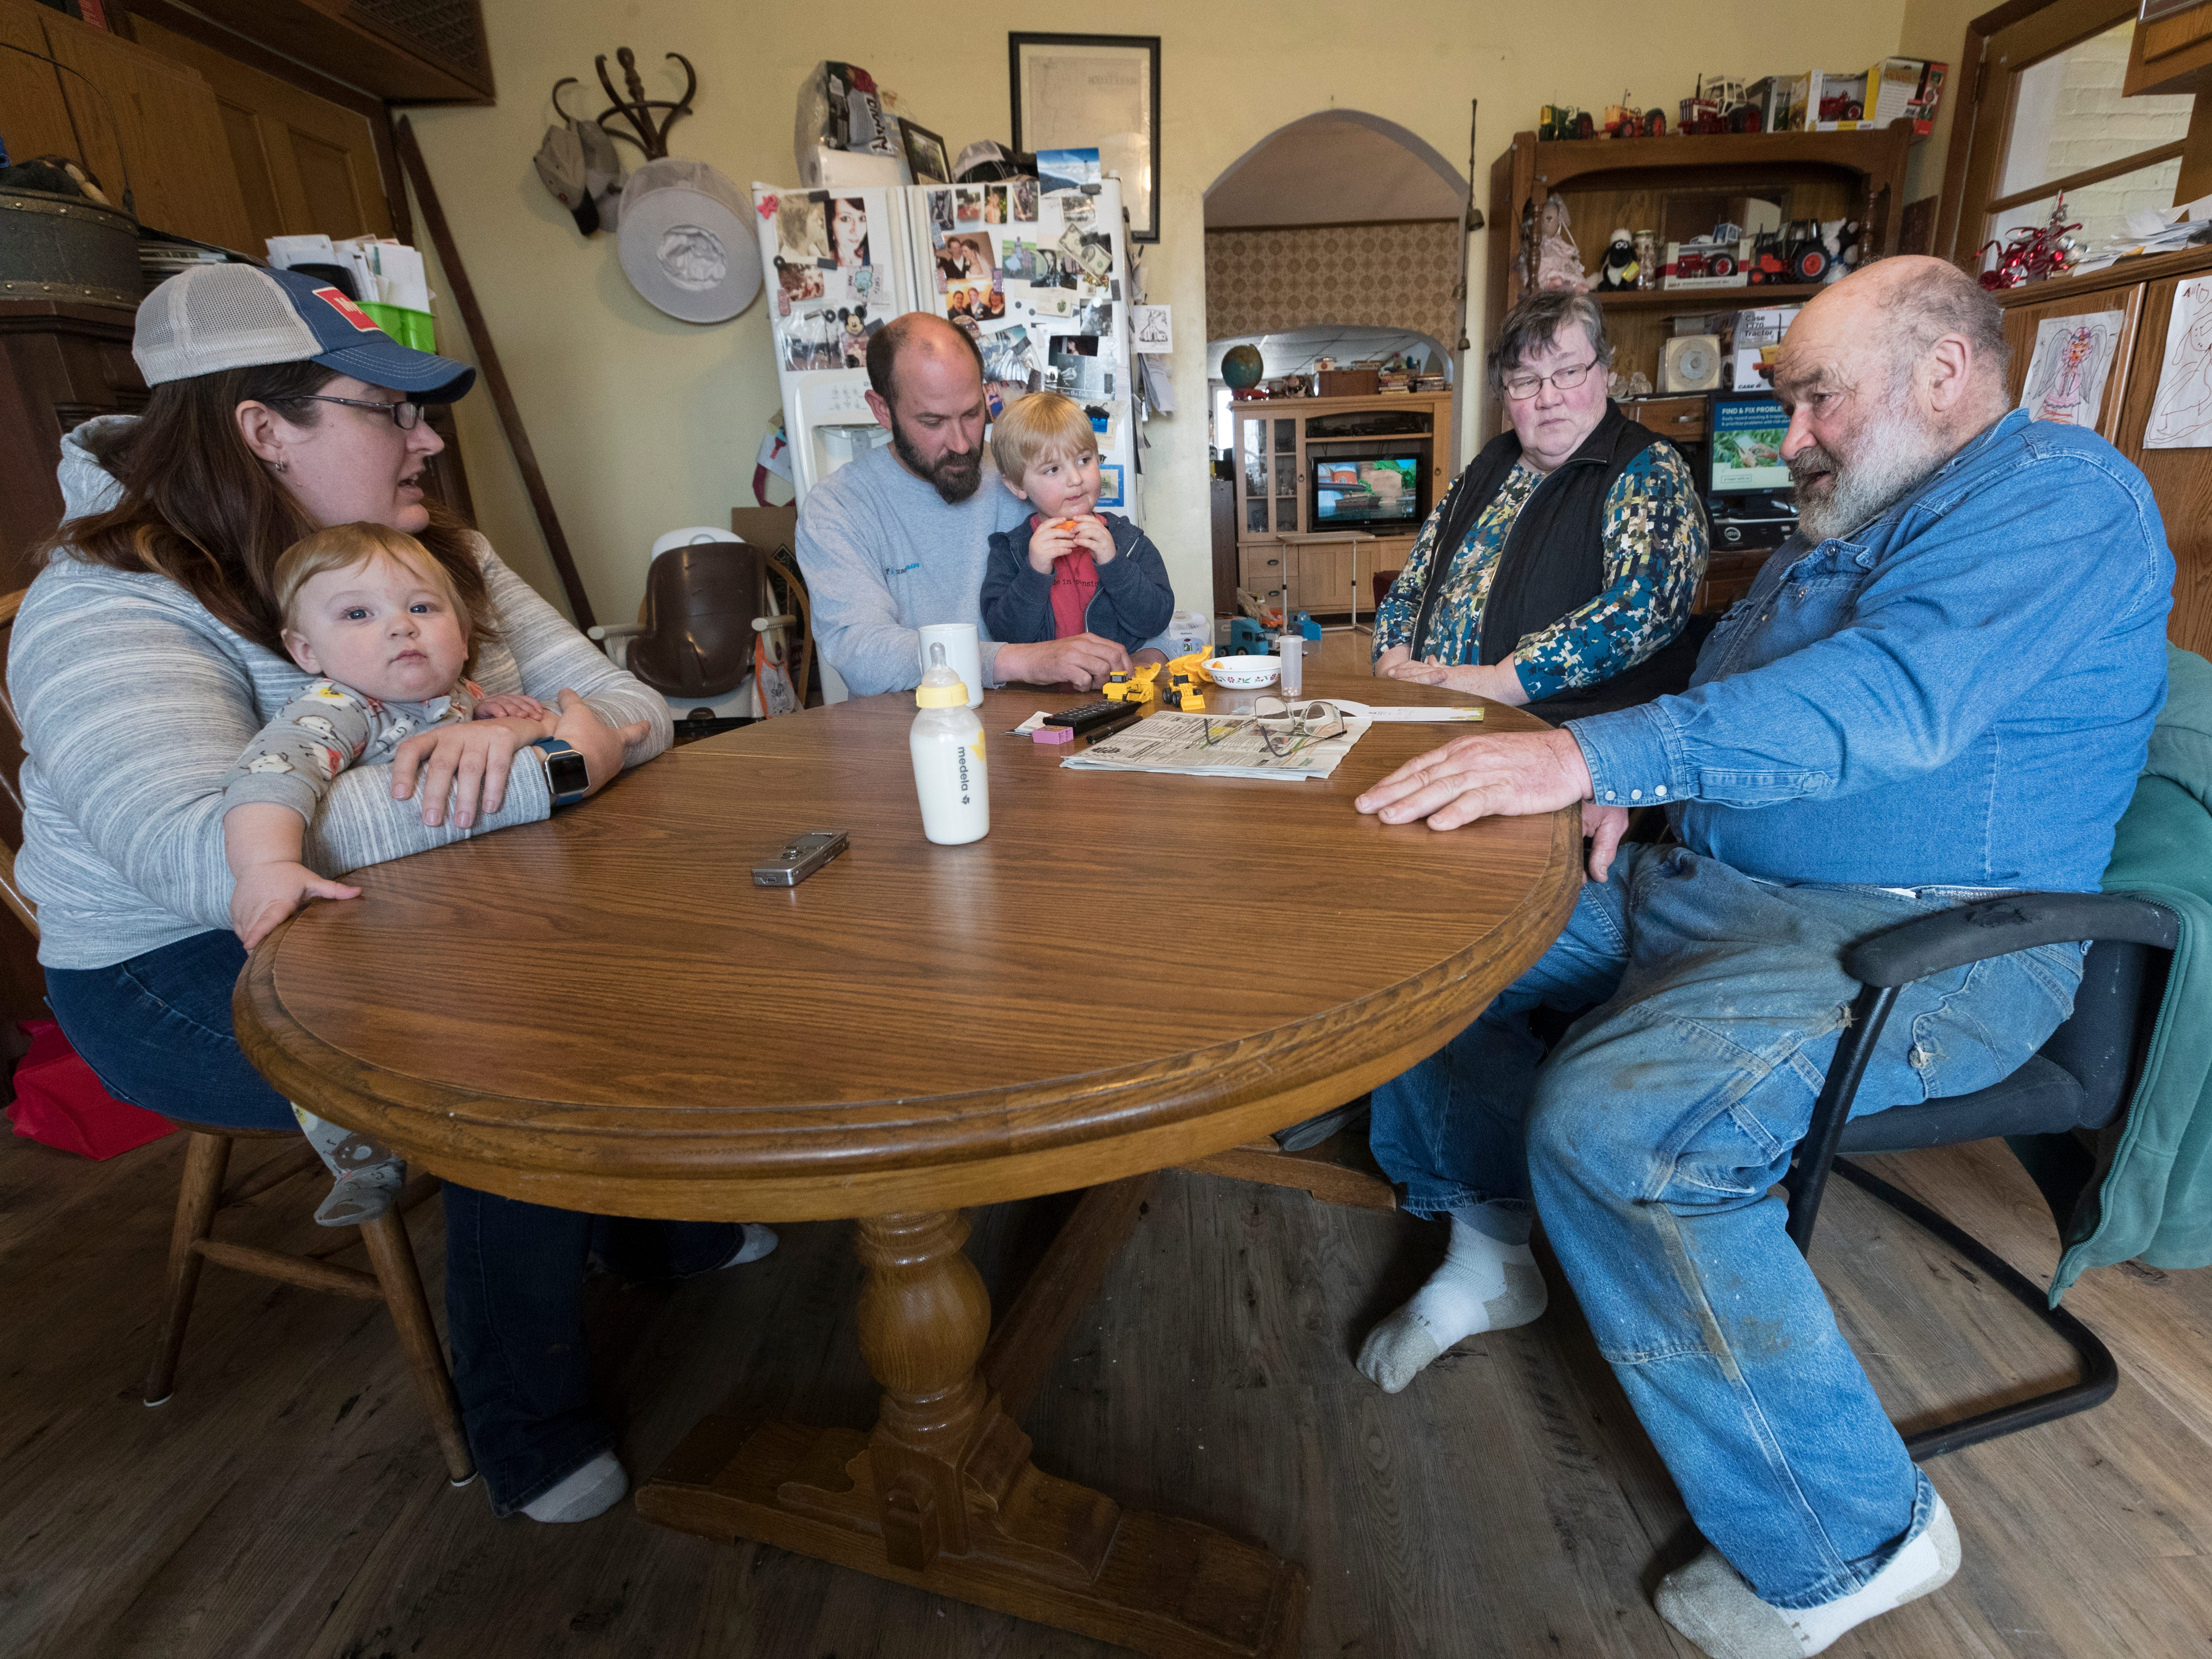 The Mess family, Carrie Mess, from left, with her 10-month-old son, Ben; husband, Patrick, with 3-year-old son Silas; and Cathy and Clem Mess, gather around their kitchen table on their farm in Watertown.